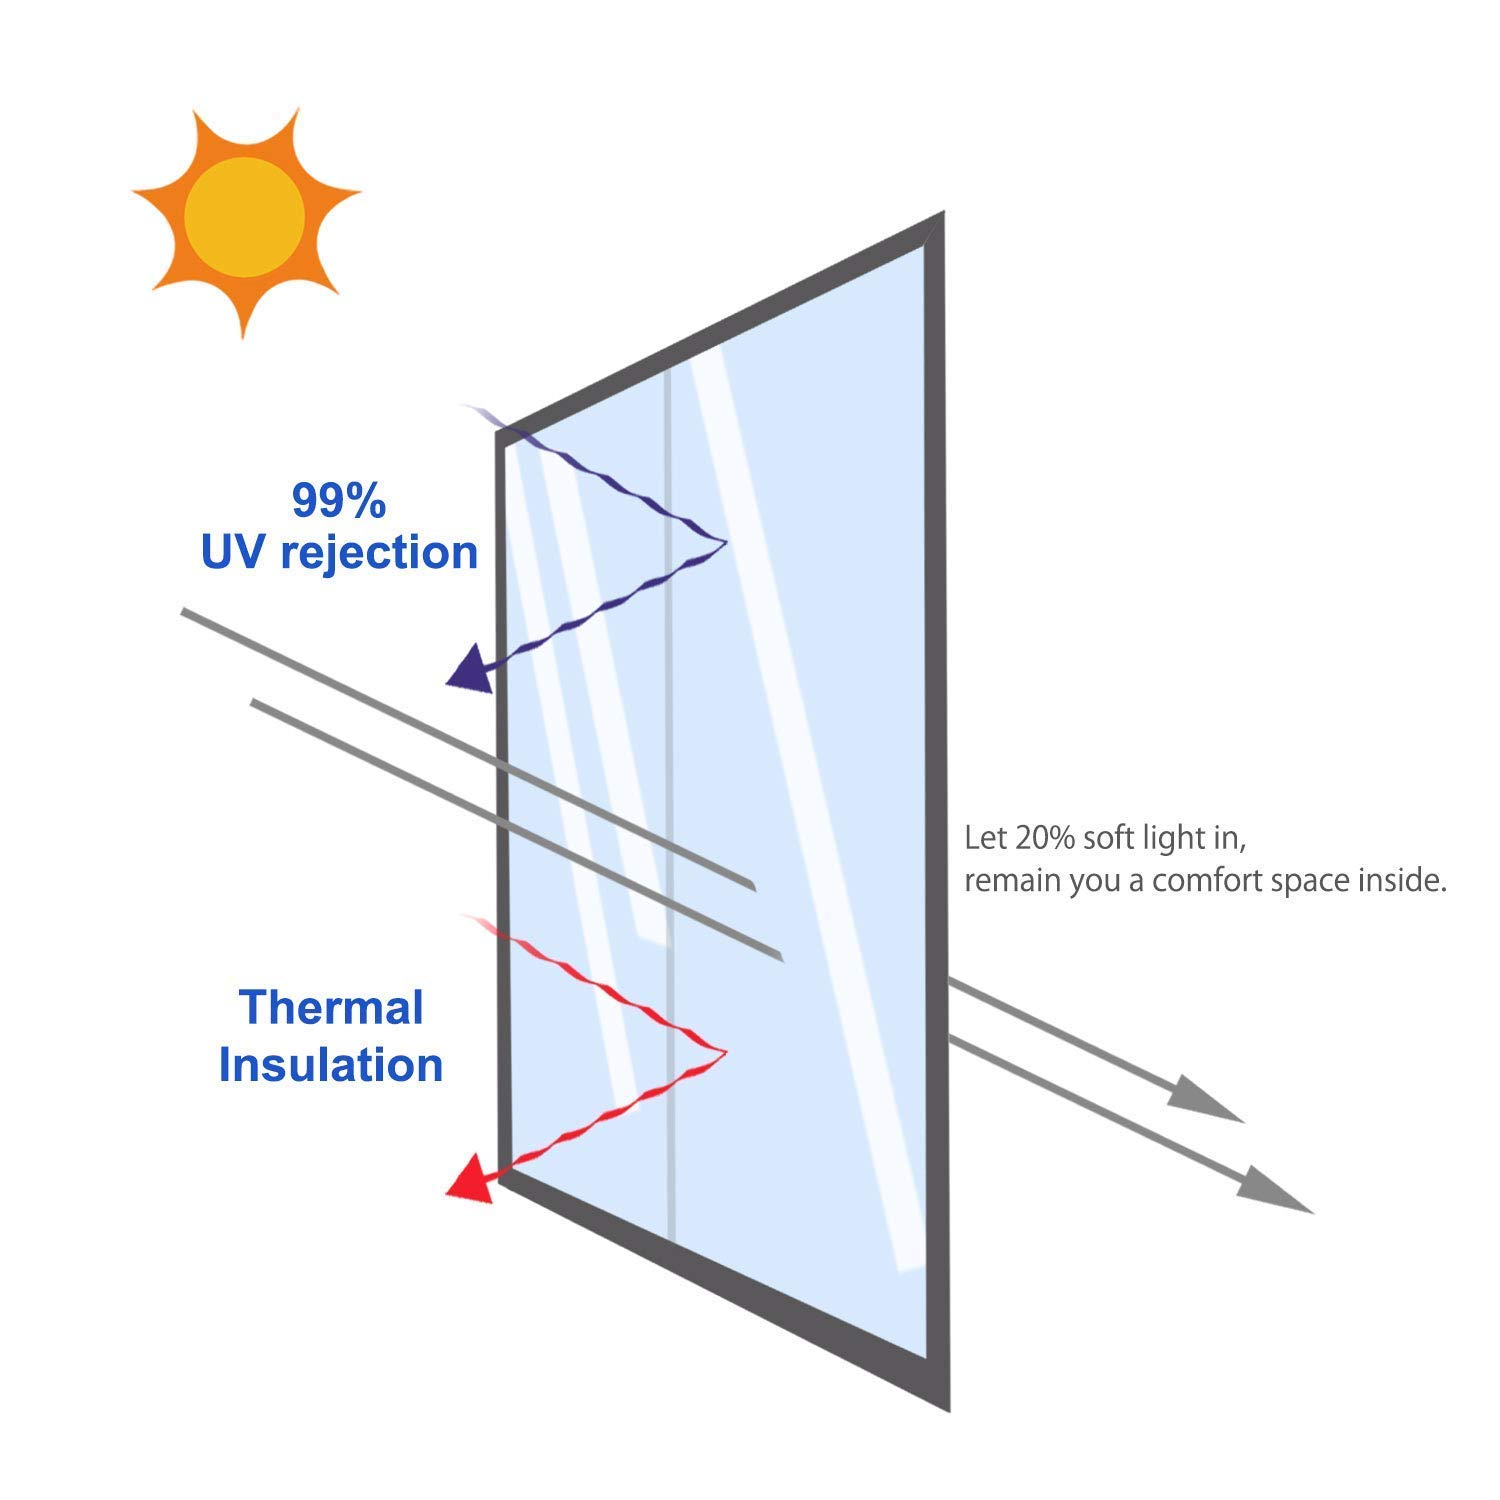 """Anti UV Static Cling Window Film 100/% Light Blocking For Privacy Removal Decorate Heat Control Glass Tint Home Office Windows. Uiter One Way Window Film- 35.4/"""" x 78.7/"""", Silver"""